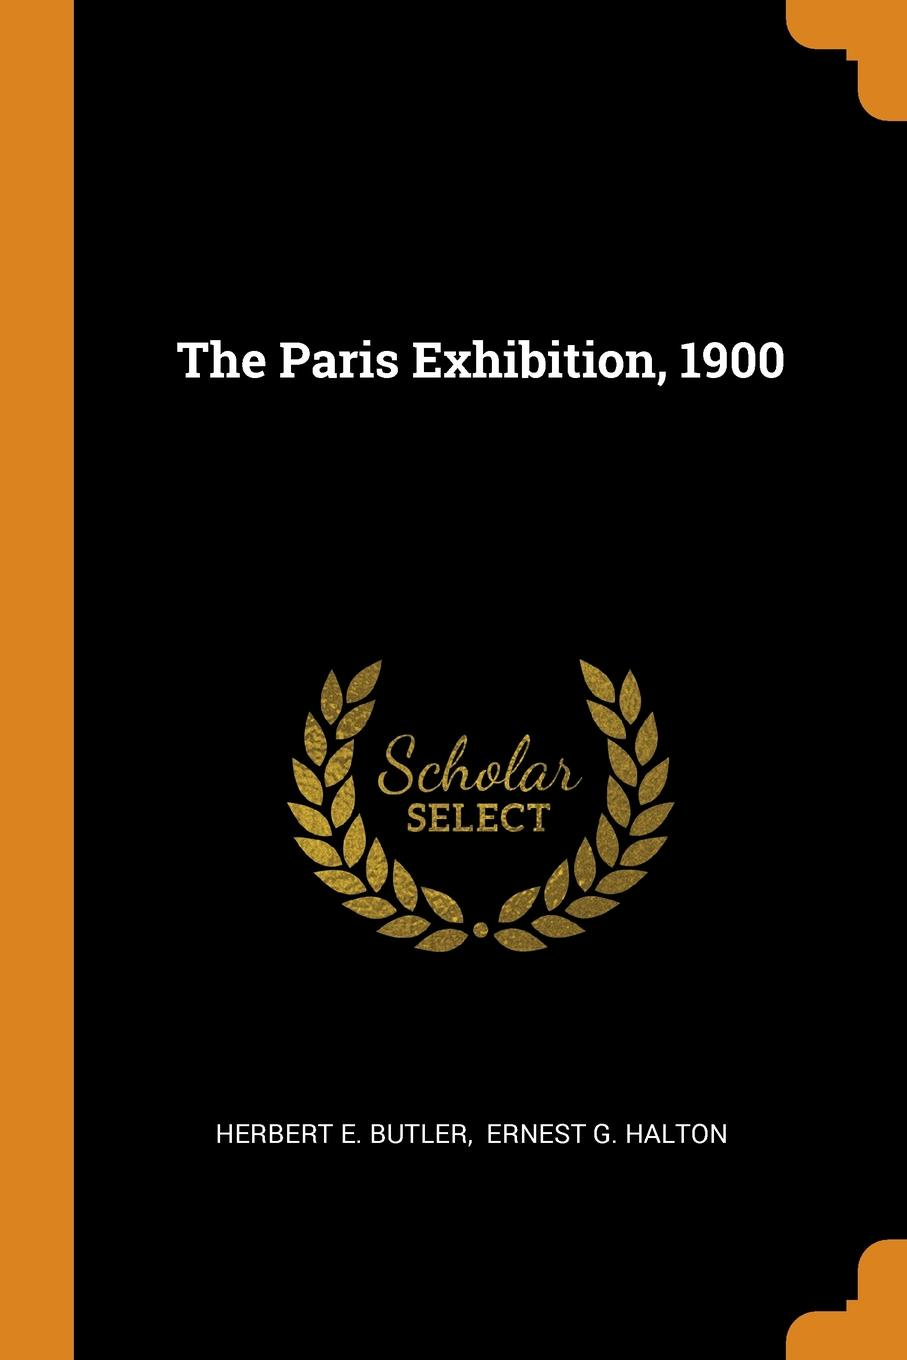 Herbert E. Butler The Paris Exhibition, 1900